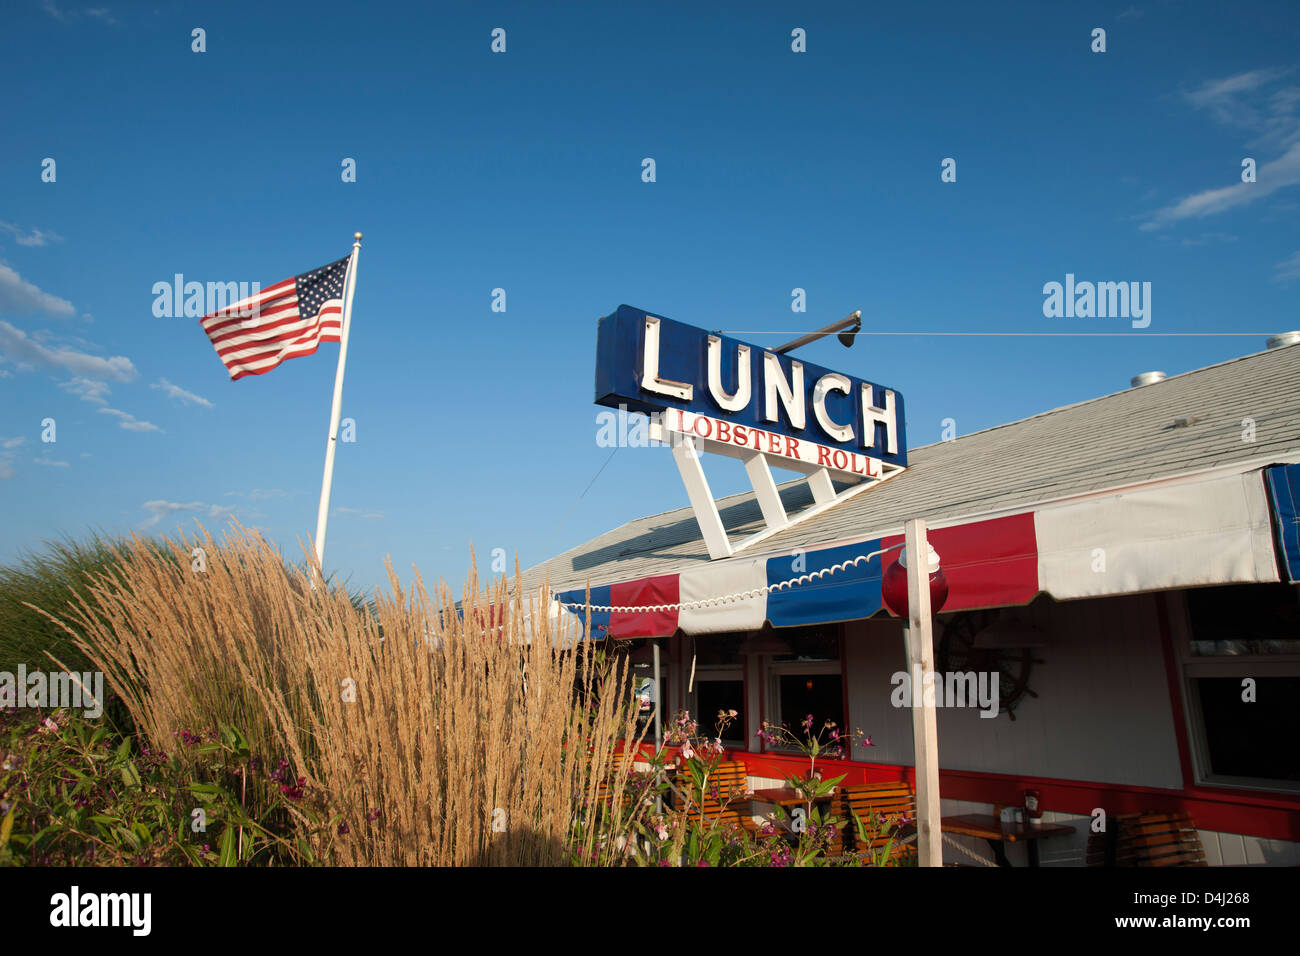 LUNCH SEAFOOD RESTAURANT MONTAUK HIGHWAY NAPEAGUE SUFFOLK COUNTY LONG ISLAND NEW YORK USA - Stock Image